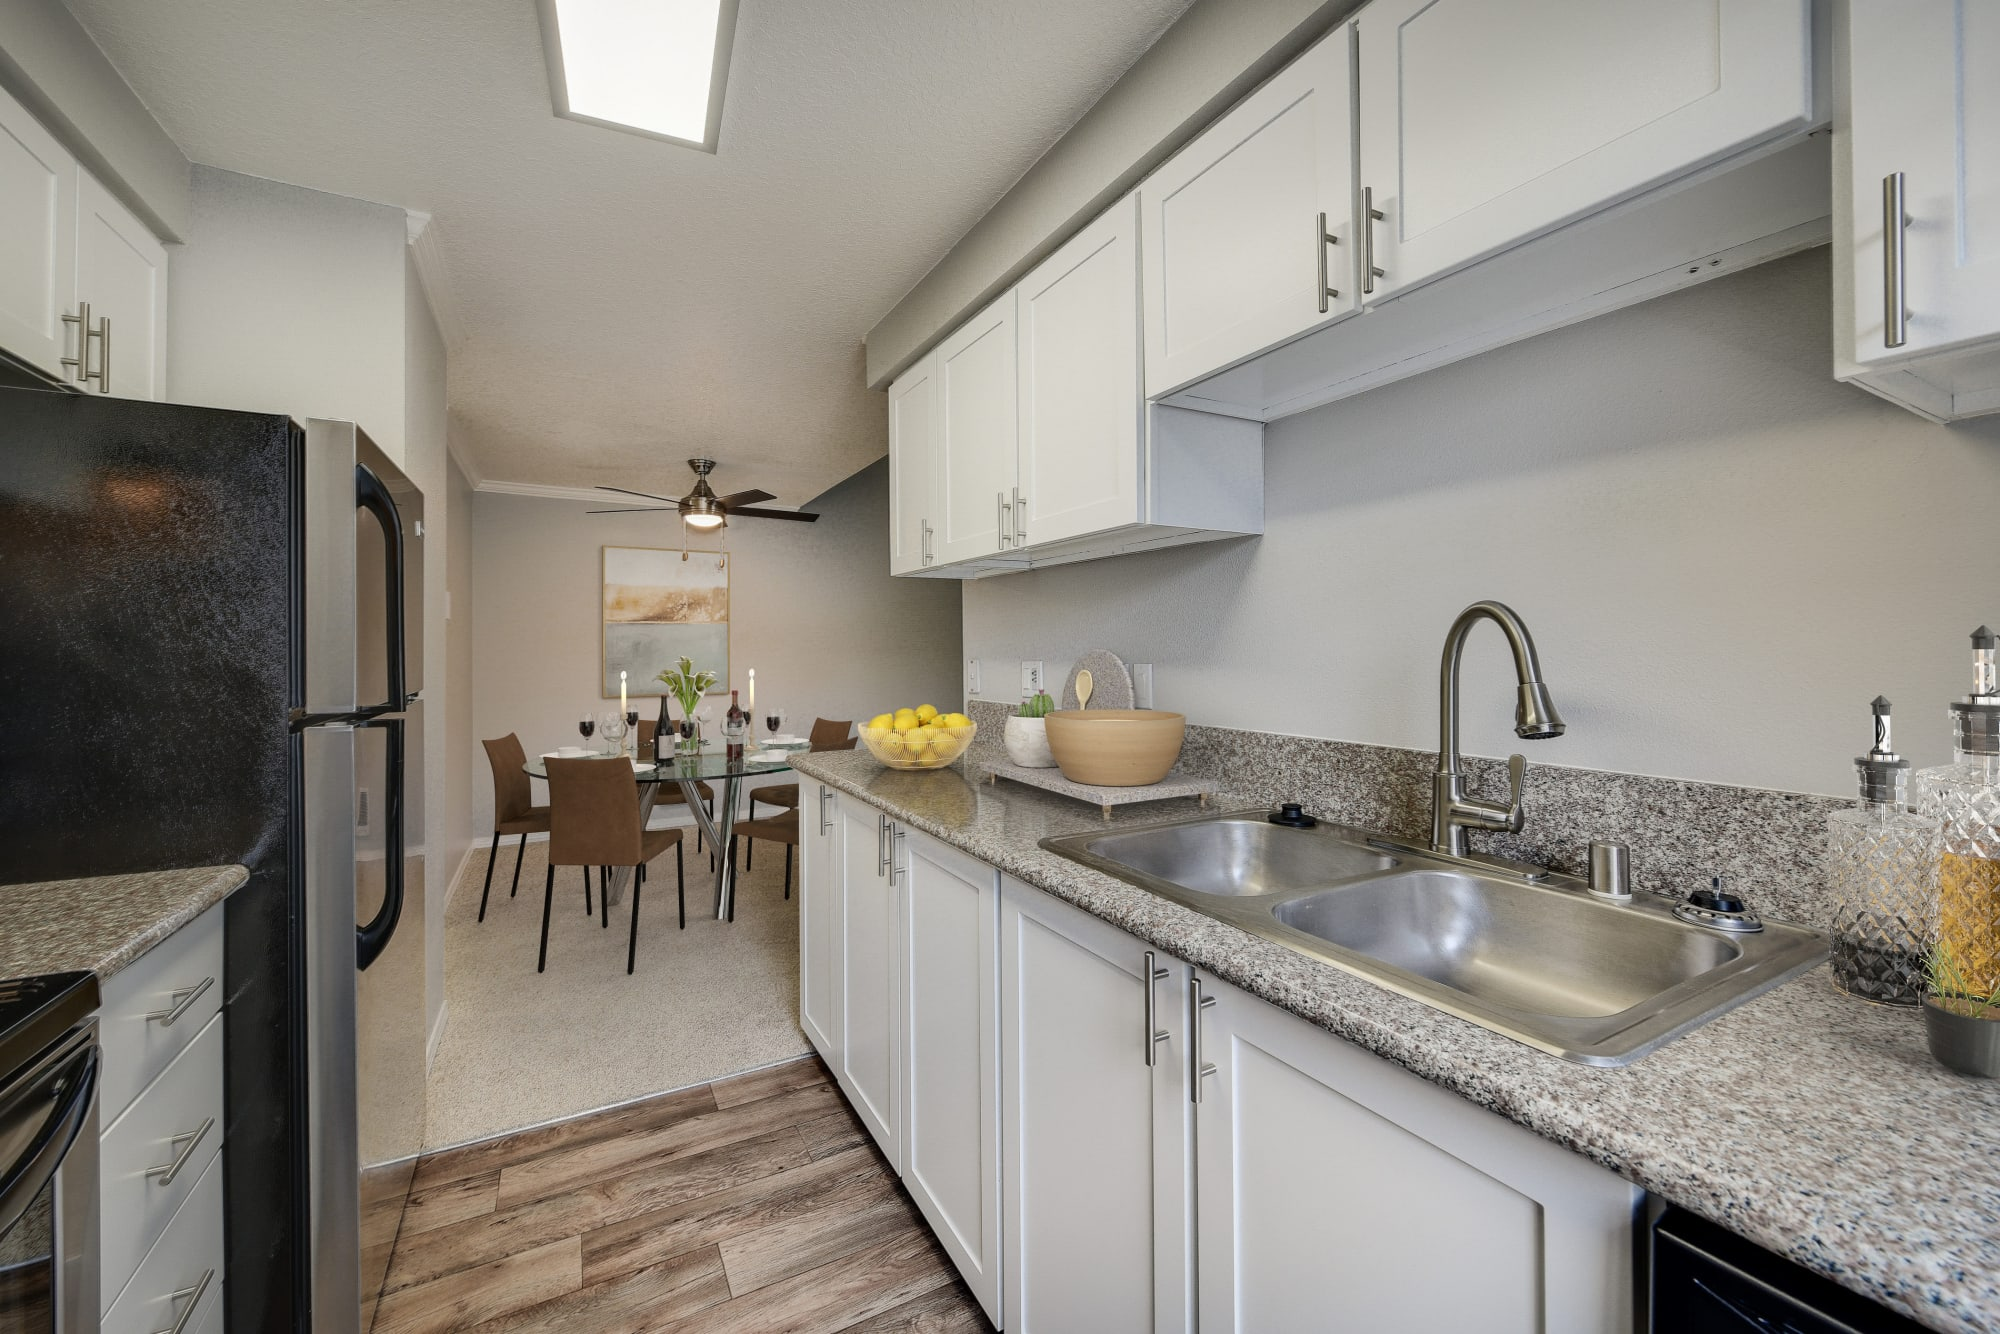 Newly renovated kitchen with white cabinets and stainless steel appliances at Walnut Grove Landing Apartments in Vancouver, Washington